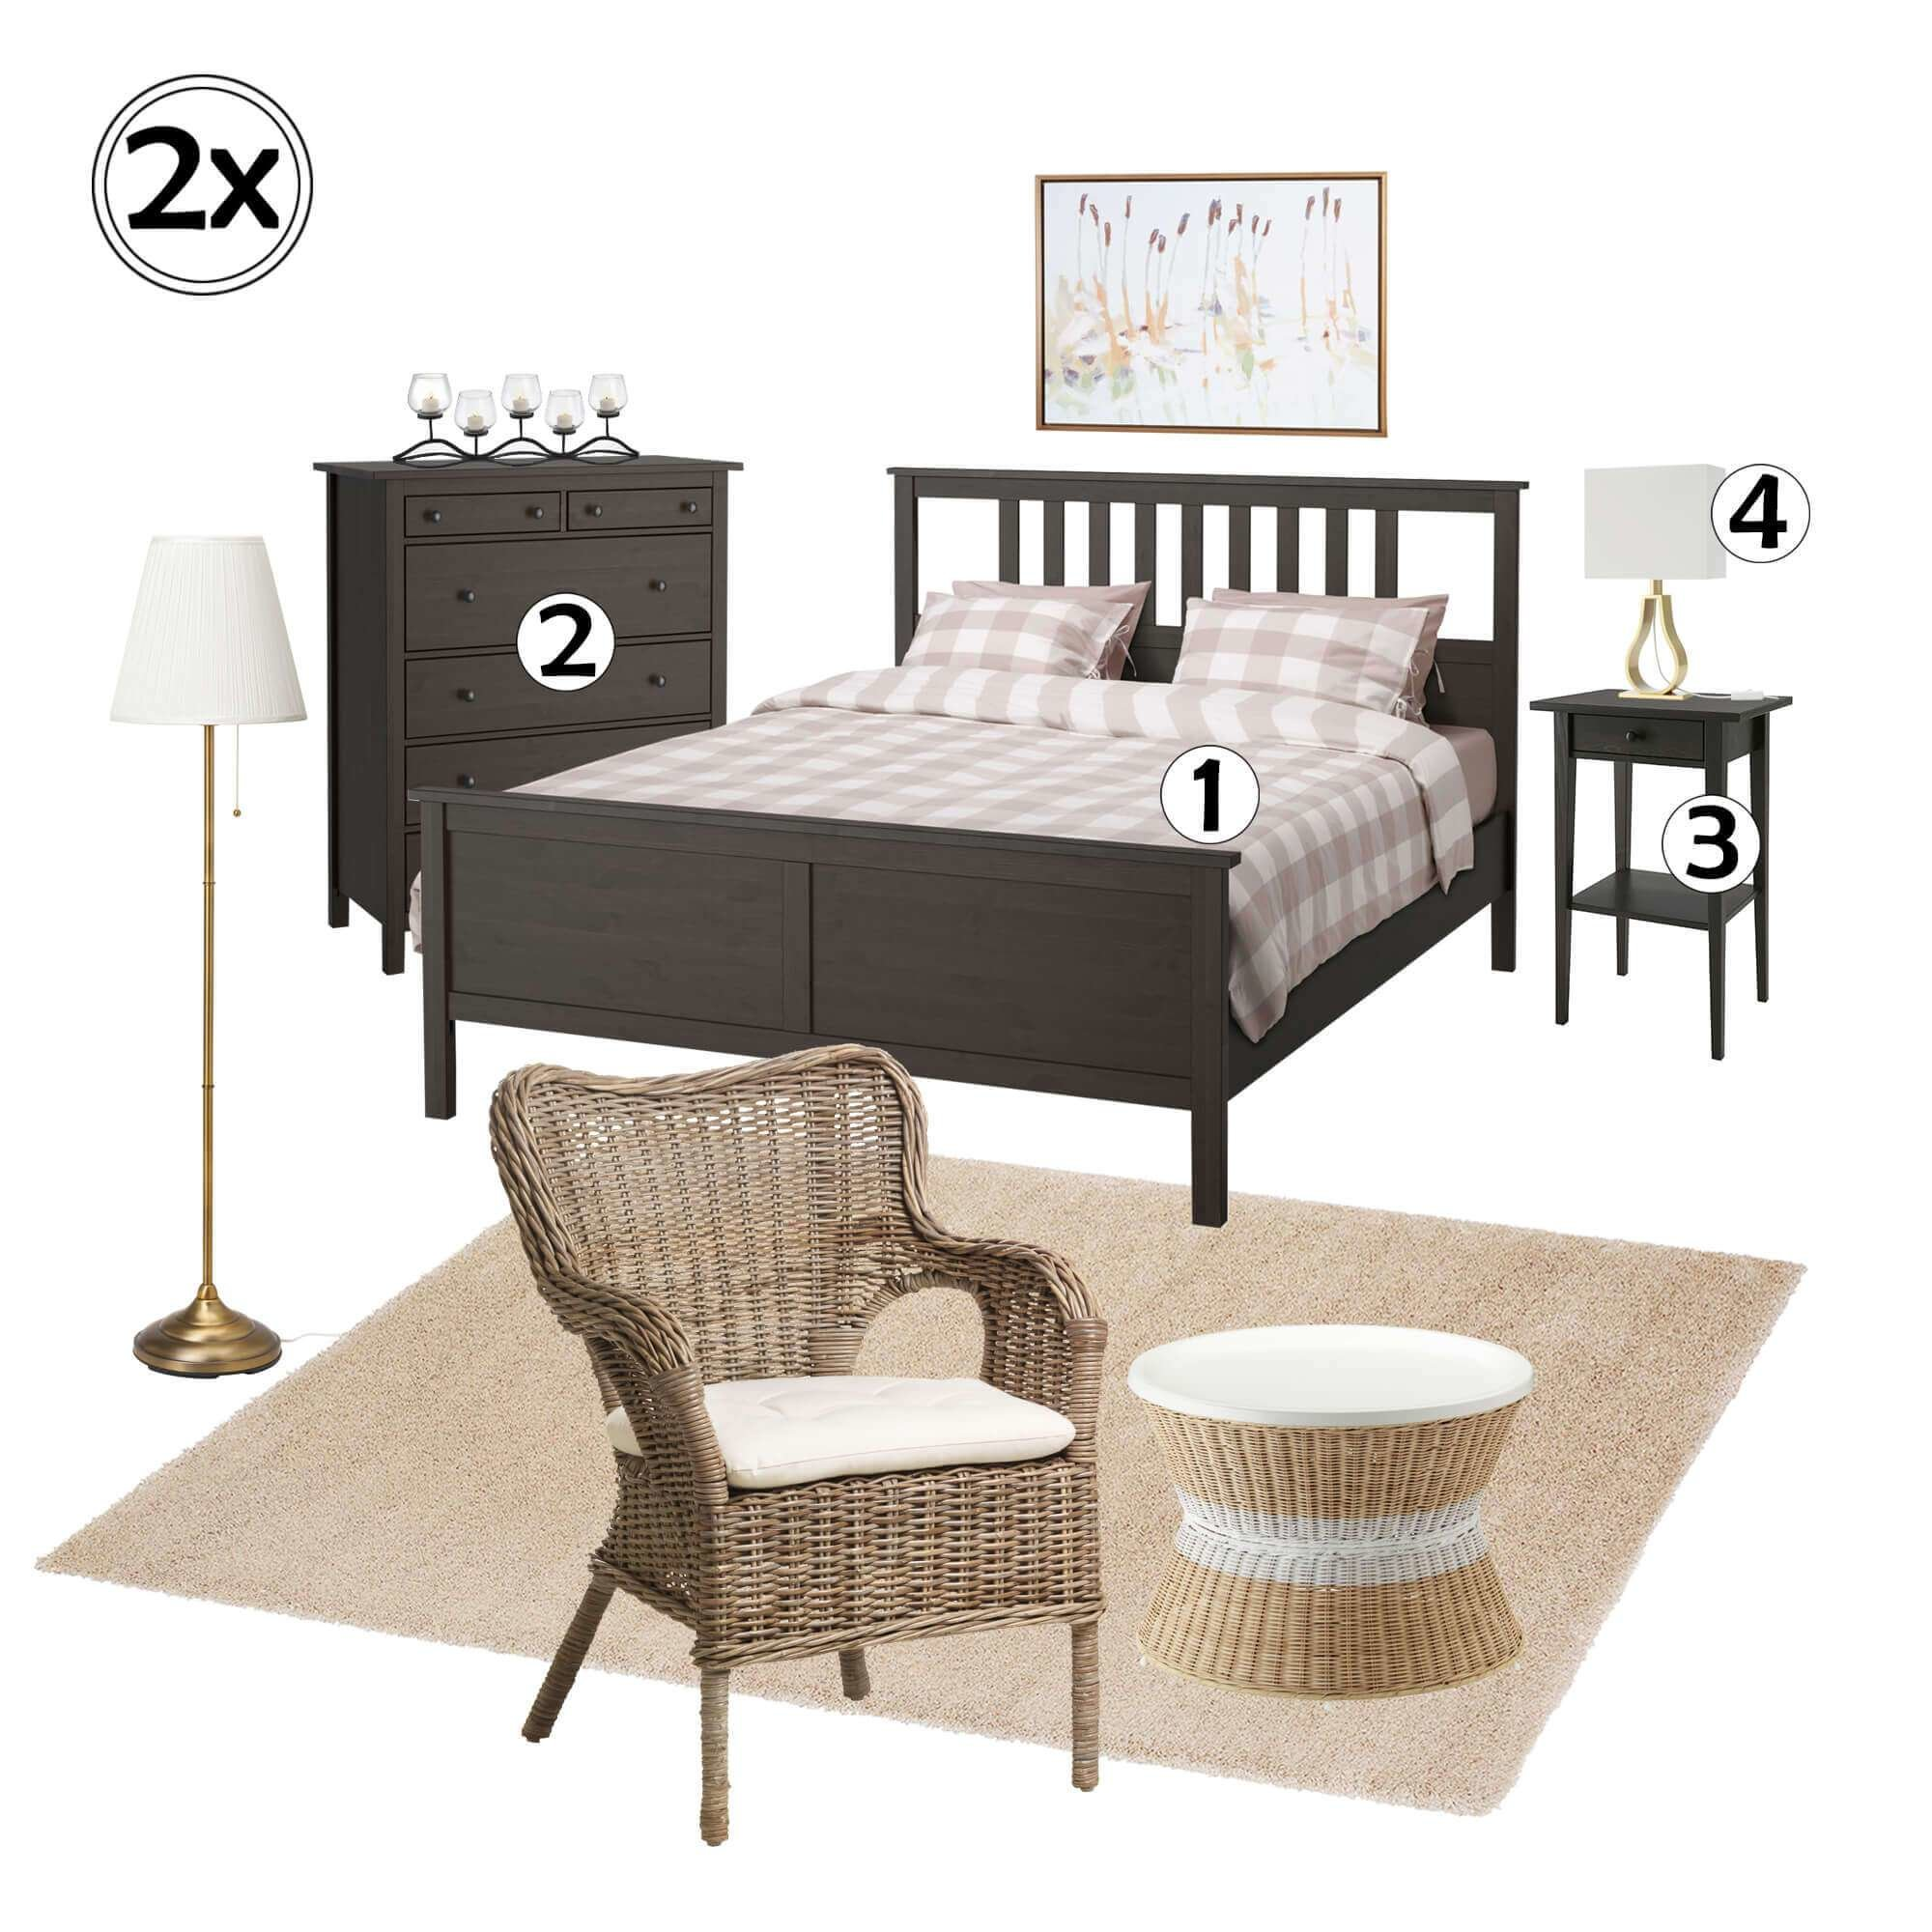 Best 2 Bedroom Furniture Set 1 Rent Pronto Furniture For With Pictures